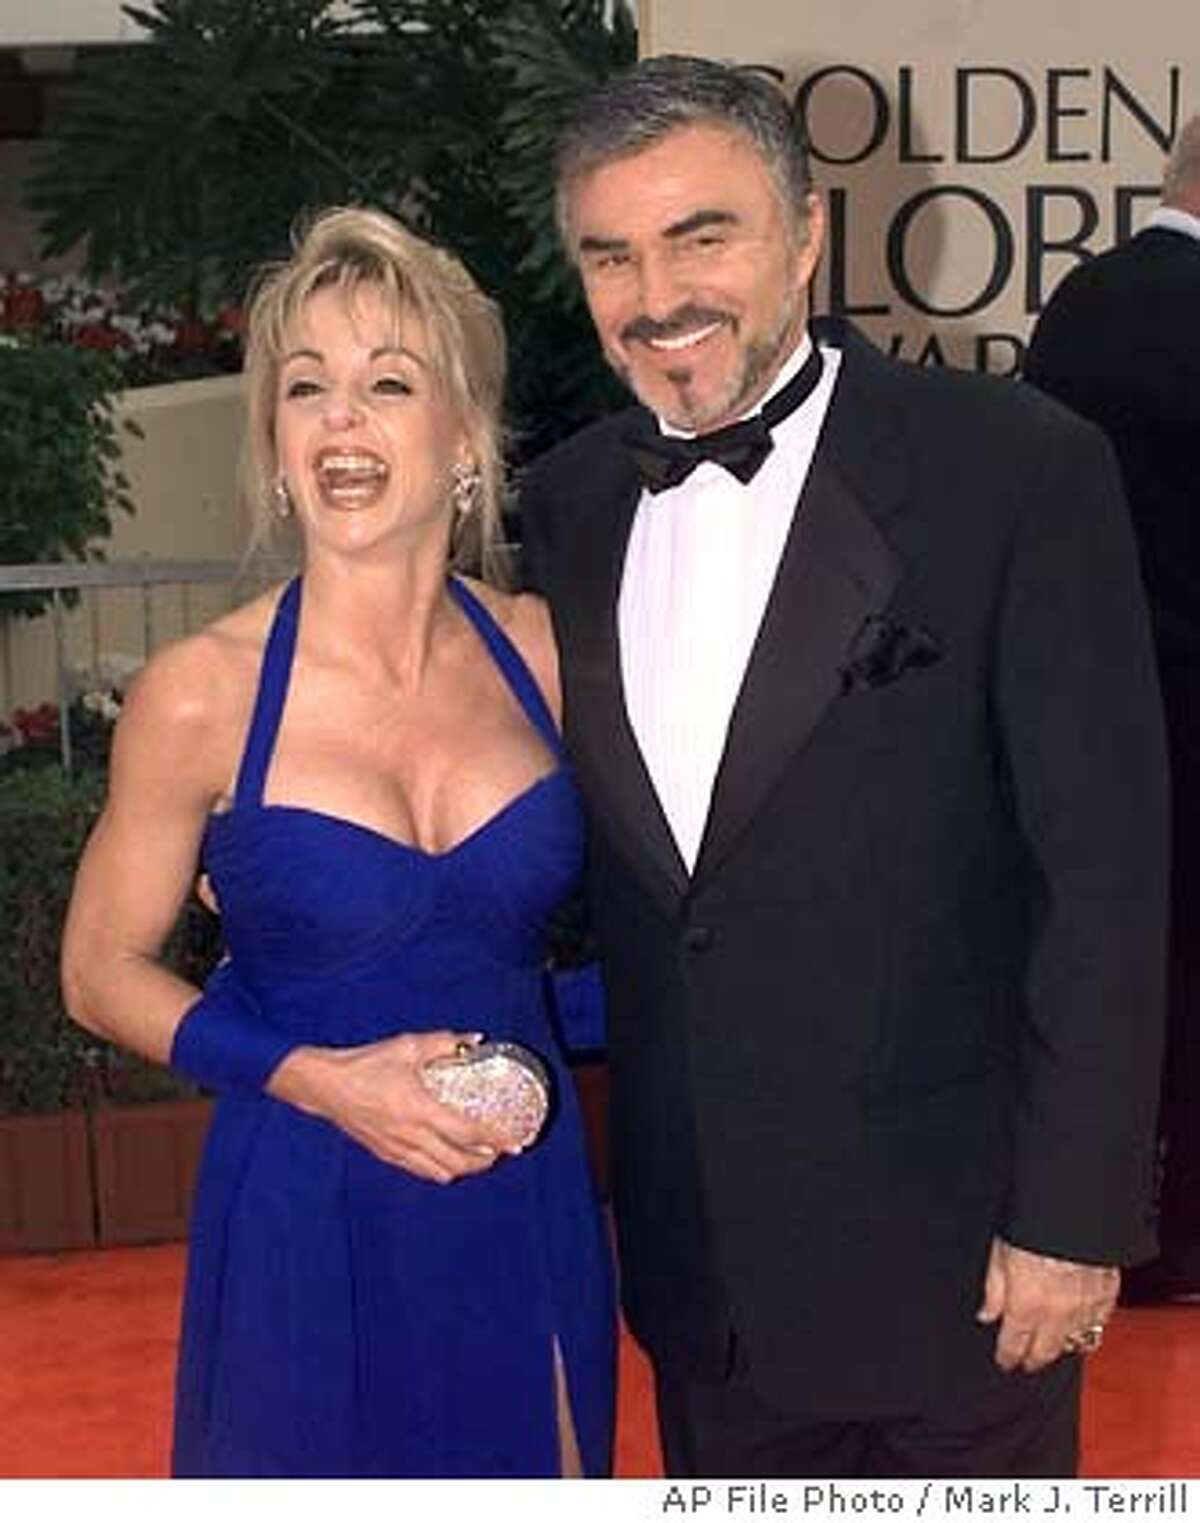 ** FILE ** Burt Reynolds and Pam Seals arrive at the annual Golden Globe Awards in Beverly Hills, Calif., Jan. 18, 1998. Reynolds sued his former girlfriend Monday, Nov. 8, 2004, in West Palm Beach, Fla. Reynolds alleges Pamela Seals was threatening to falsely accuse him of abuse if he did not pay millions of dollars in extortion. (AP Photo/Mark J. Terrill, File)